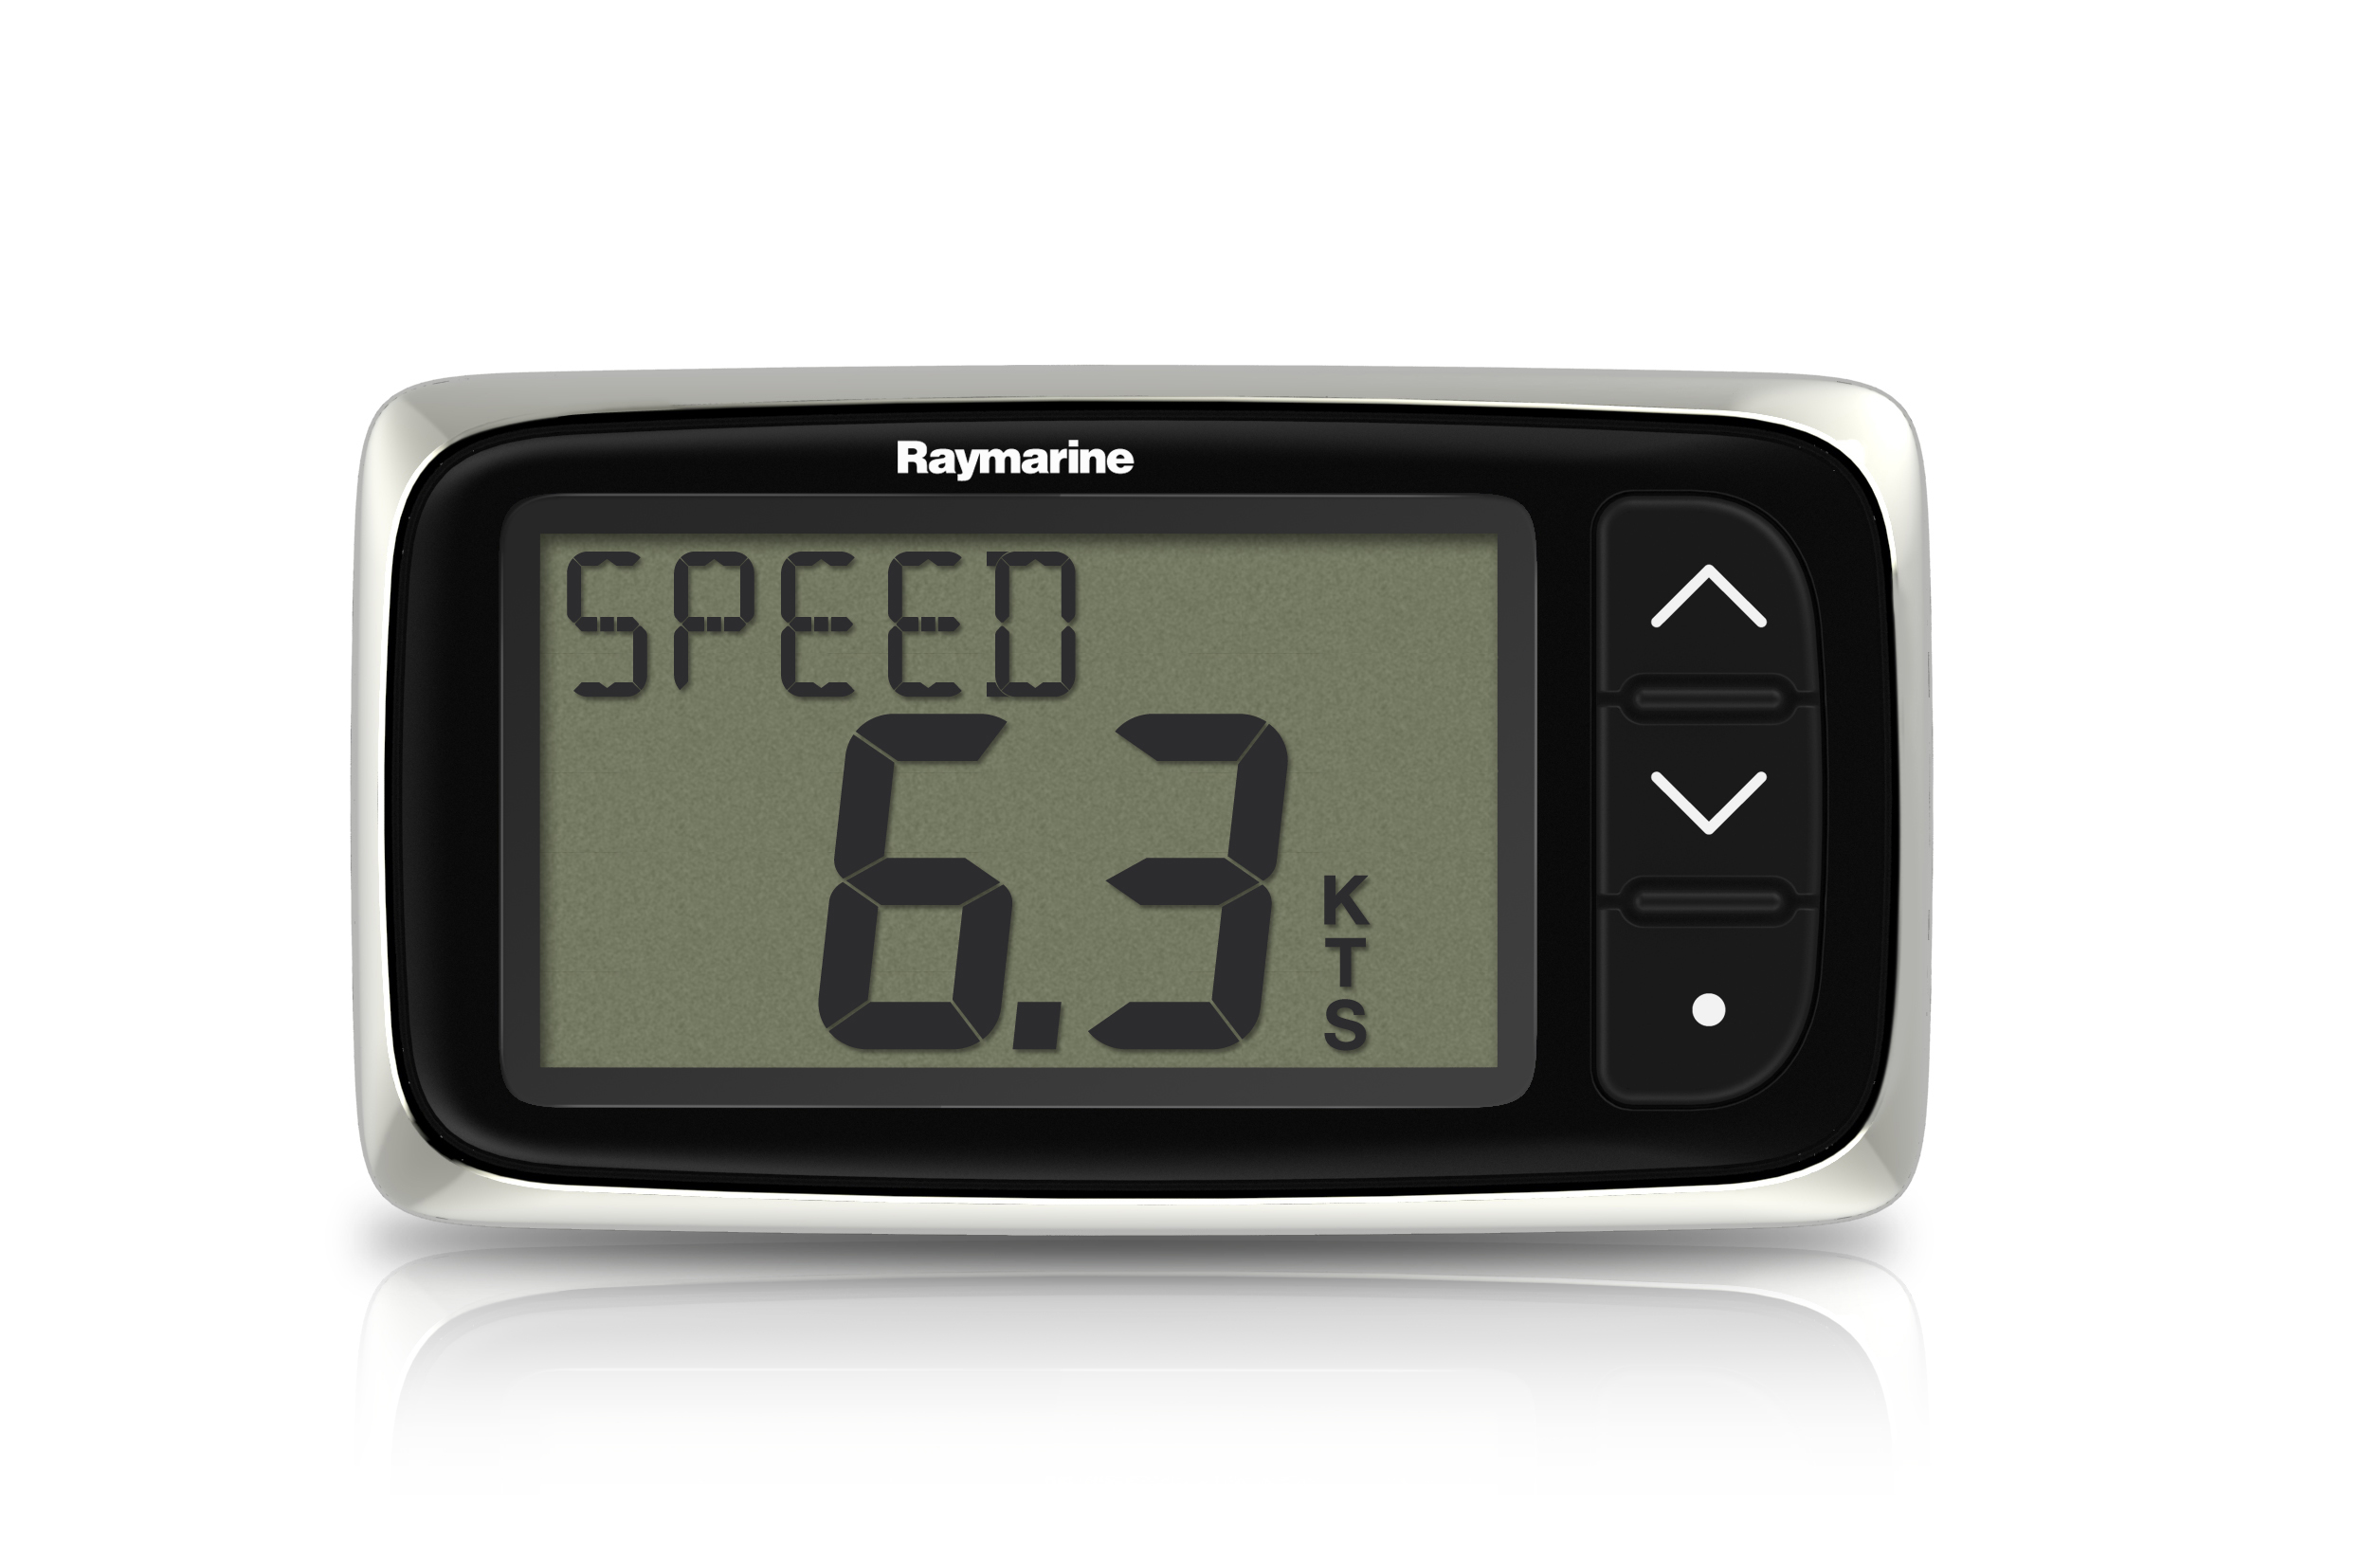 i40 speed front instrument display